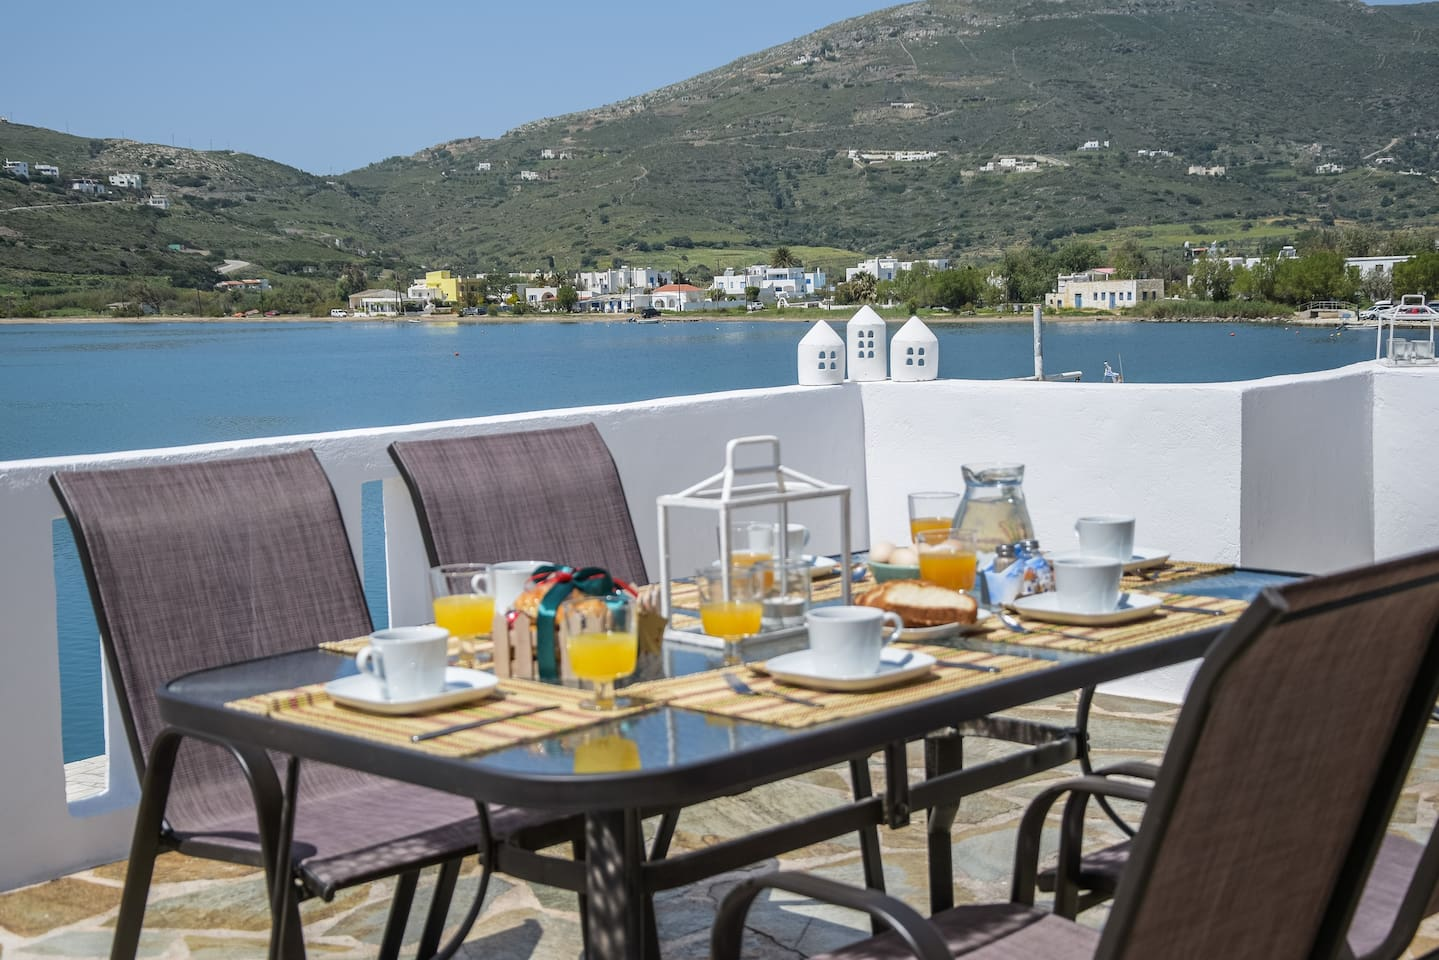 Start the day with breakfast in the sun on your own private veranda. Enjoy the splendid Seaview. Decide what you will do today. No hurry!!! Everything is near you. Beaches, car rentals, public transportation, cafeterias,  grocery stores.